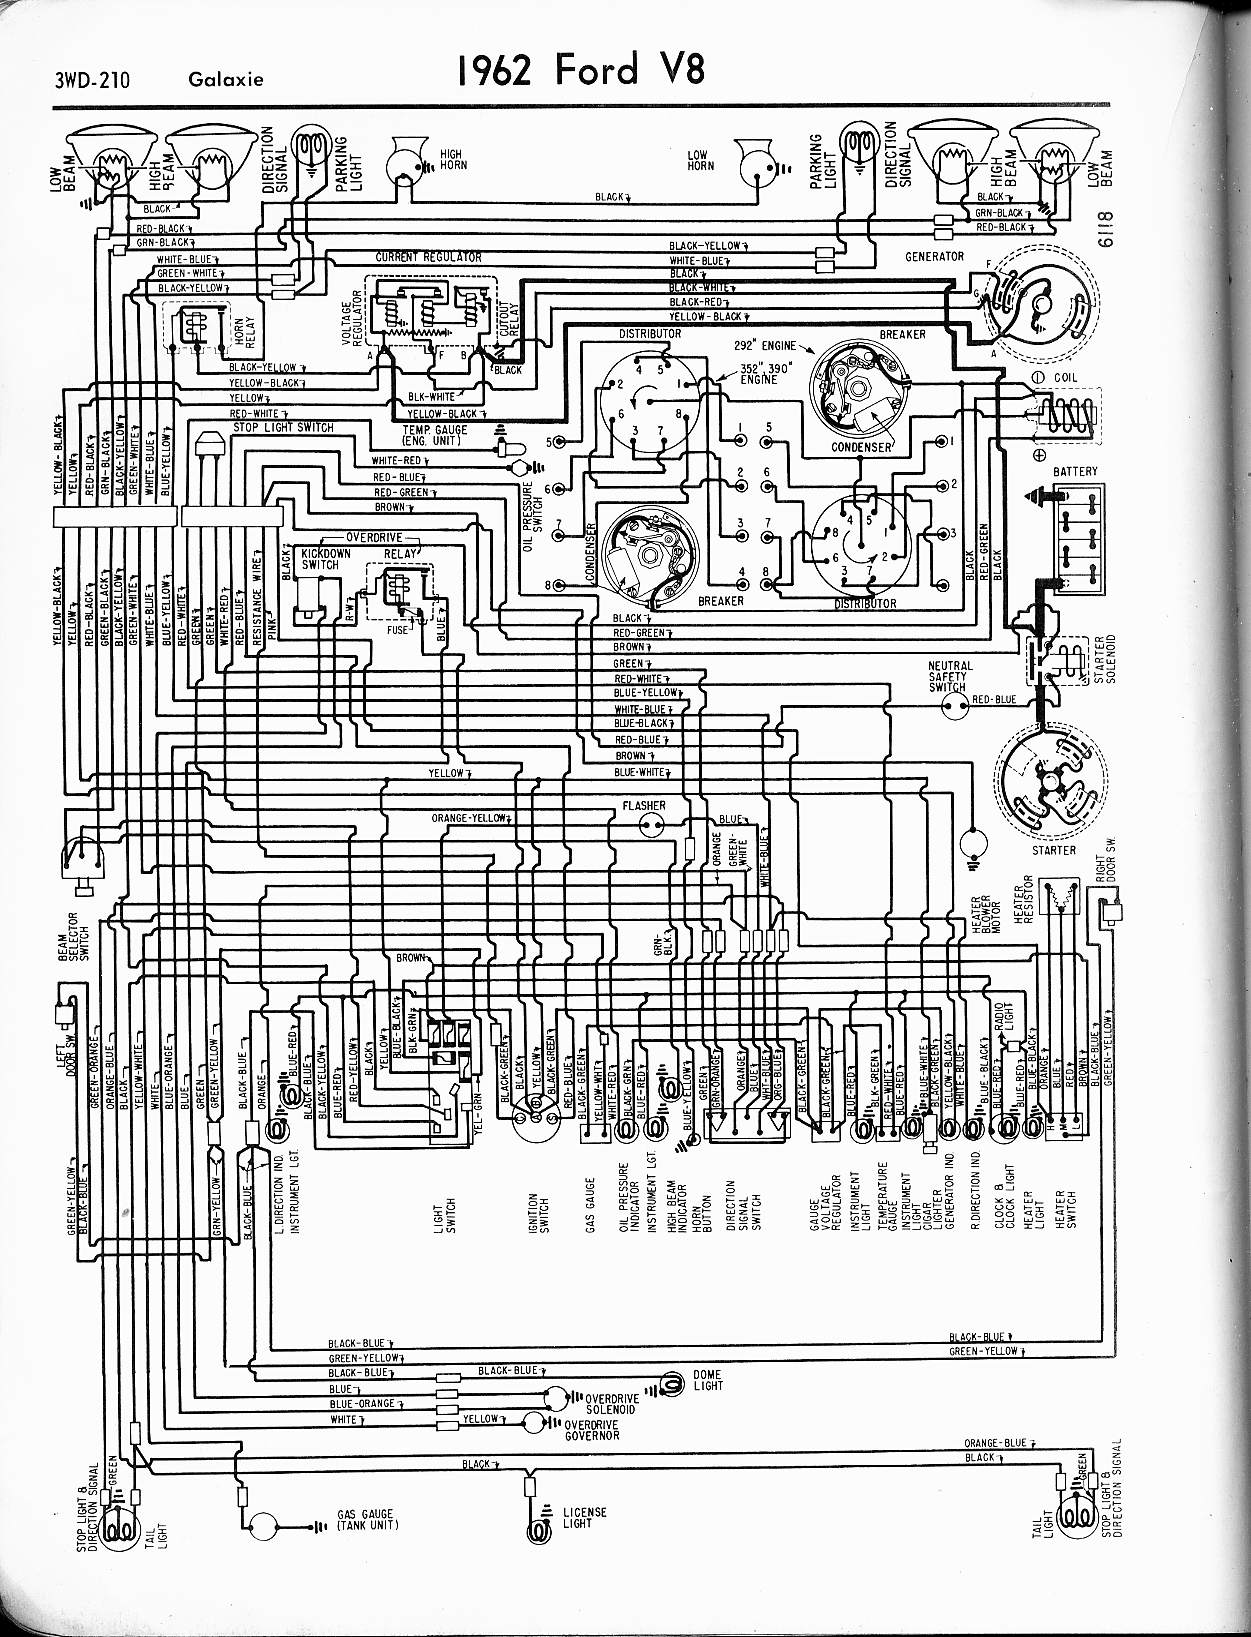 V8 Engine Wiring Diagram Layout Diagrams Rover Electronic Ignition 1968 Experts Of U2022 Rh Evilcloud Co Uk Vt Vr